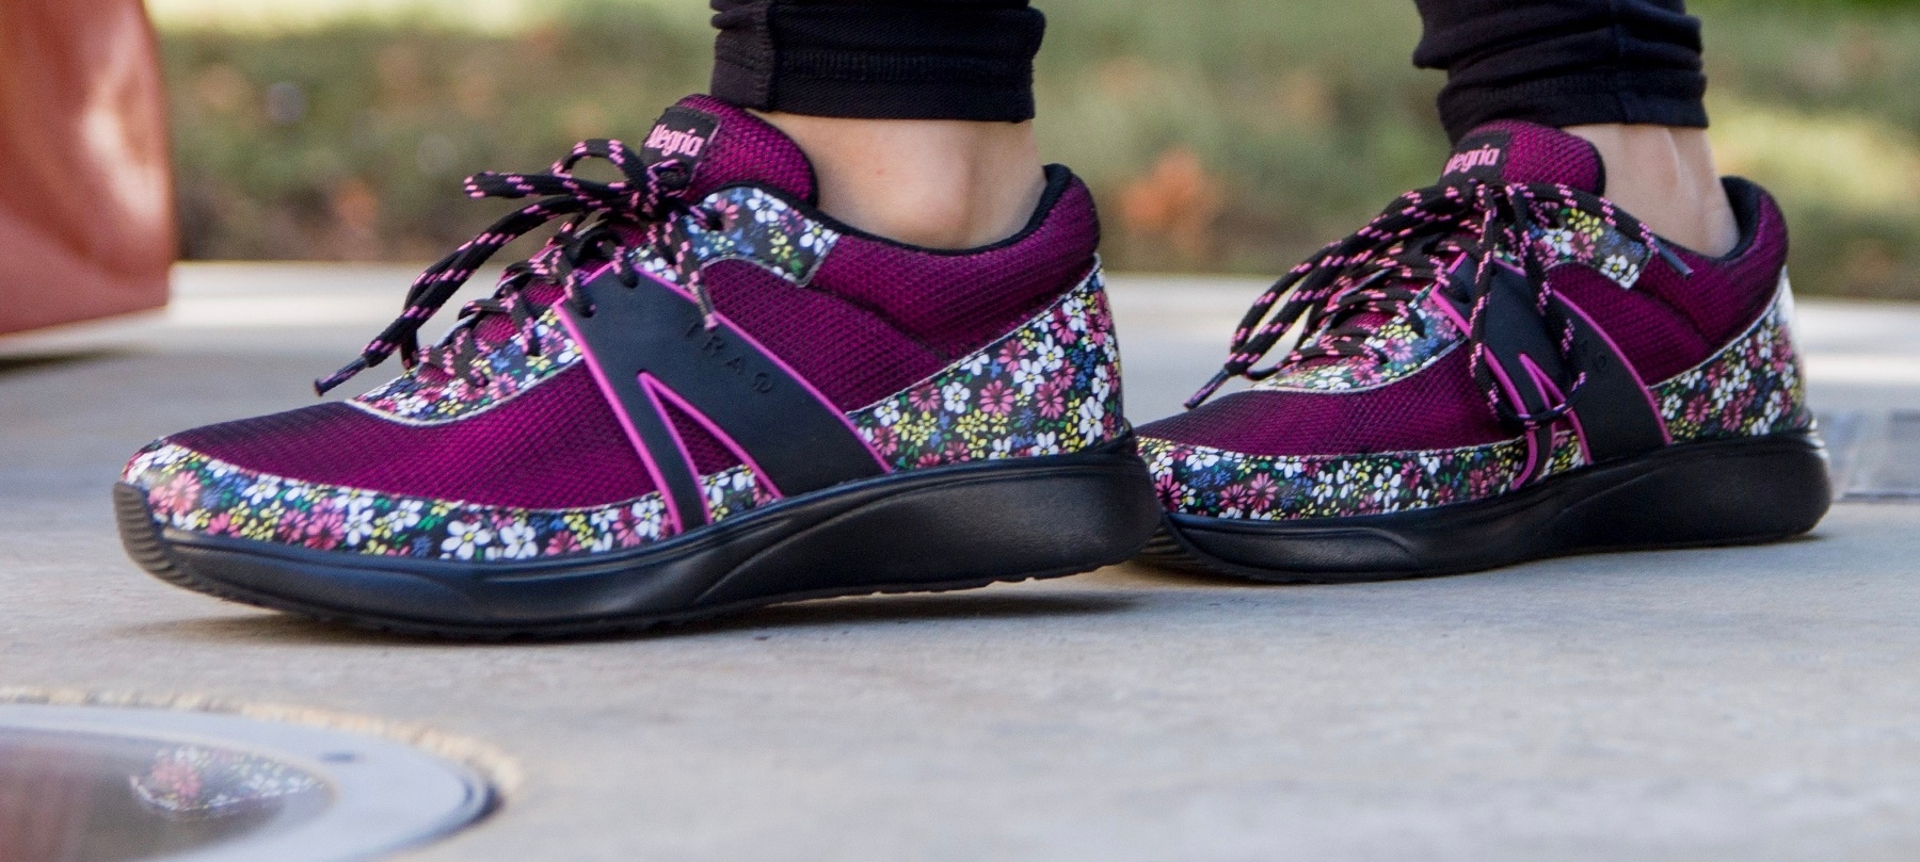 Purple athletic shoes with a floral print